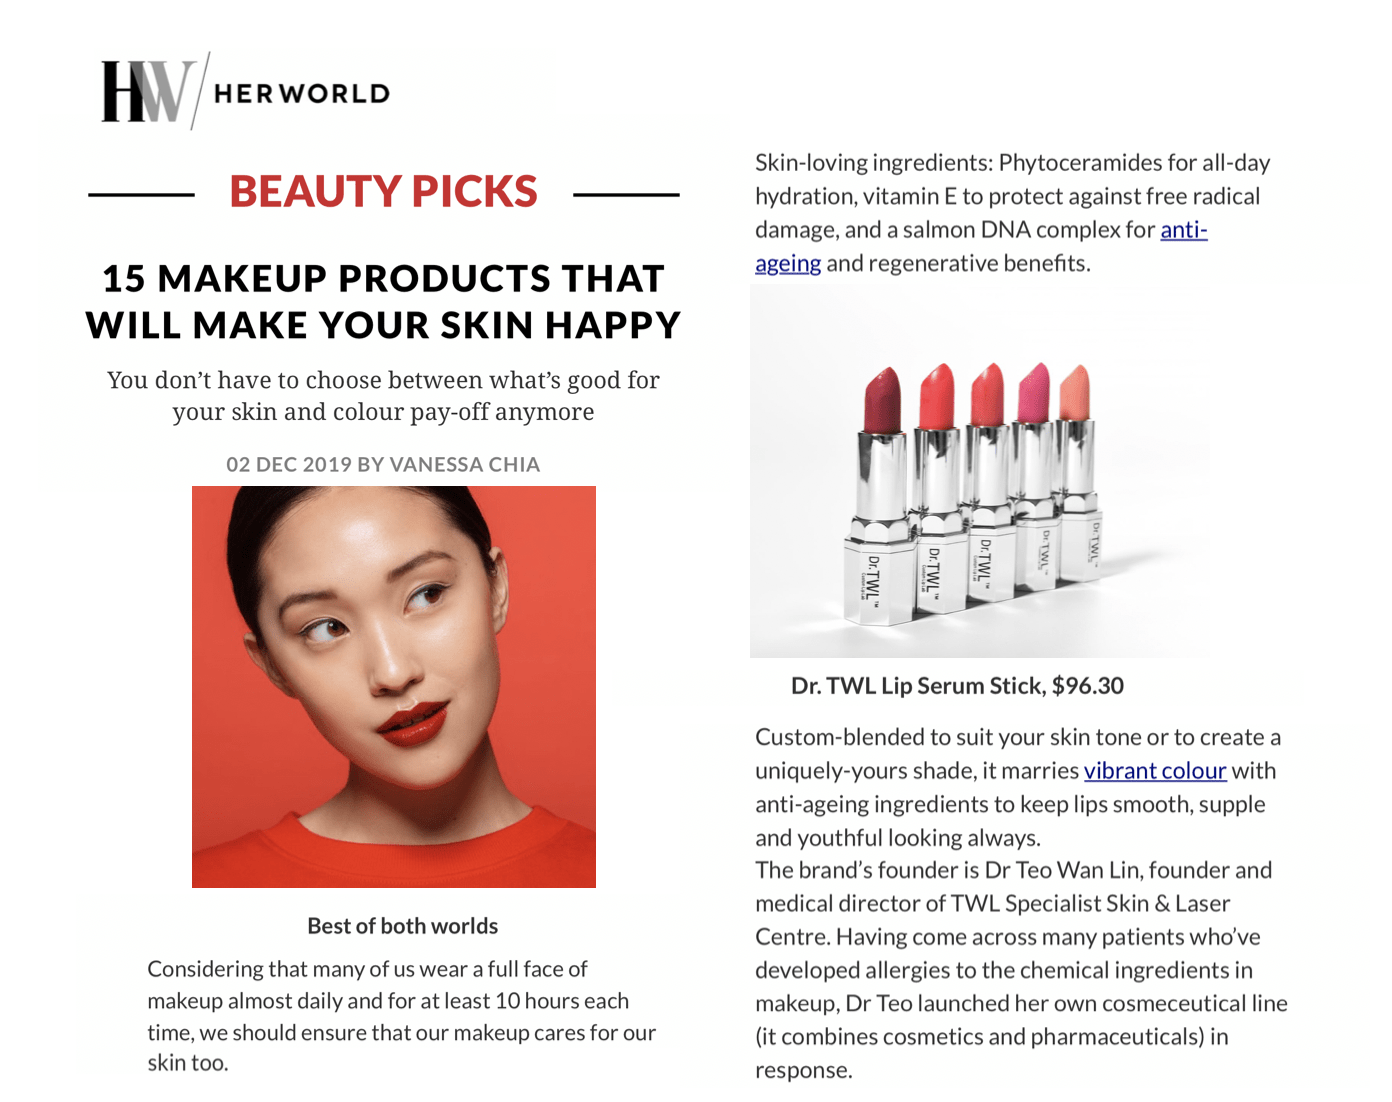 HerWorld - Happy Skin Makeup Products with Singapore Dermatologist